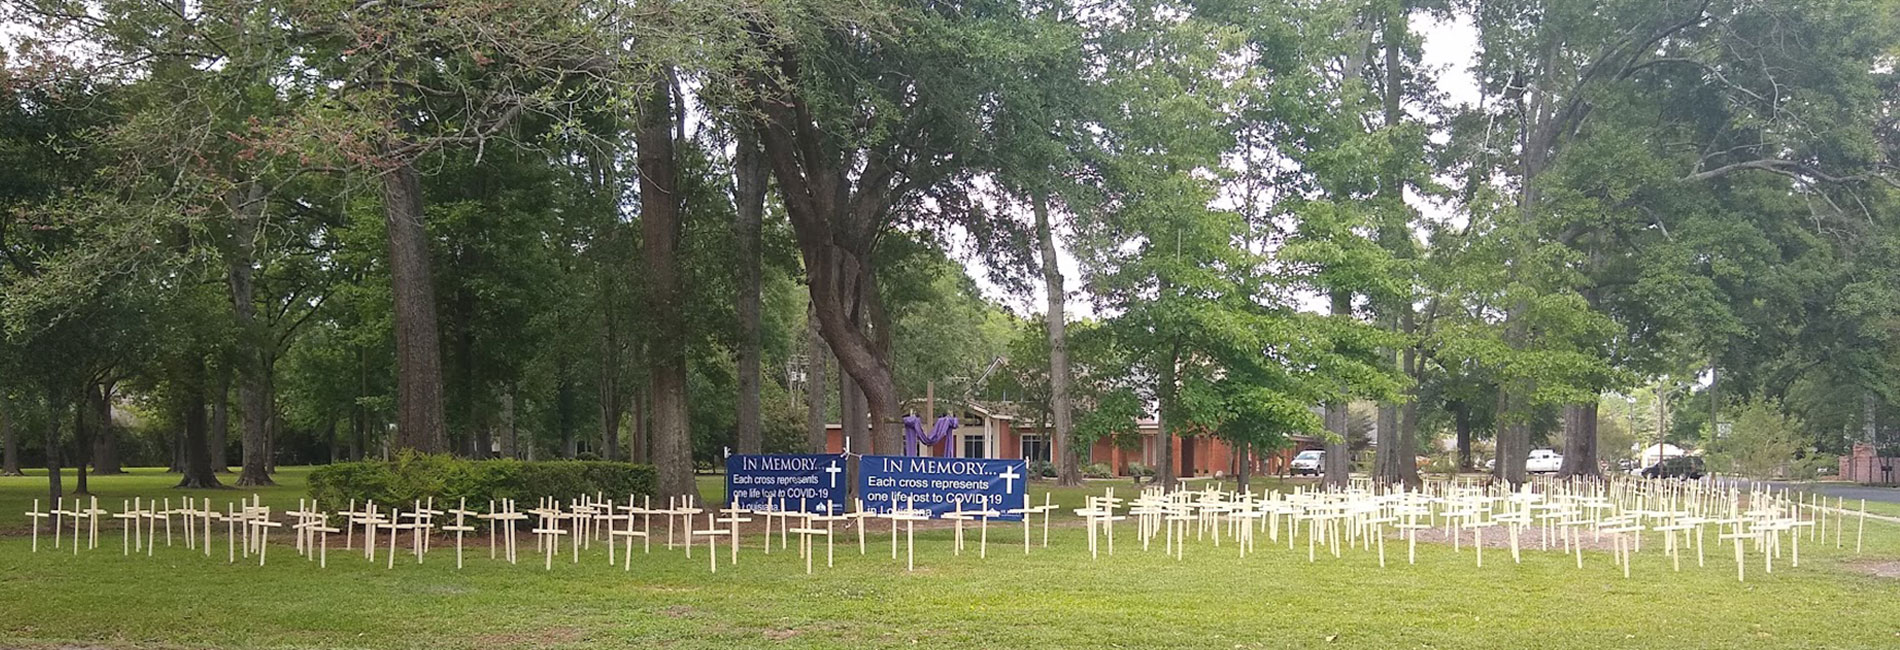 COVID-19 Crosses at St. John's UMC in Baton Rouge